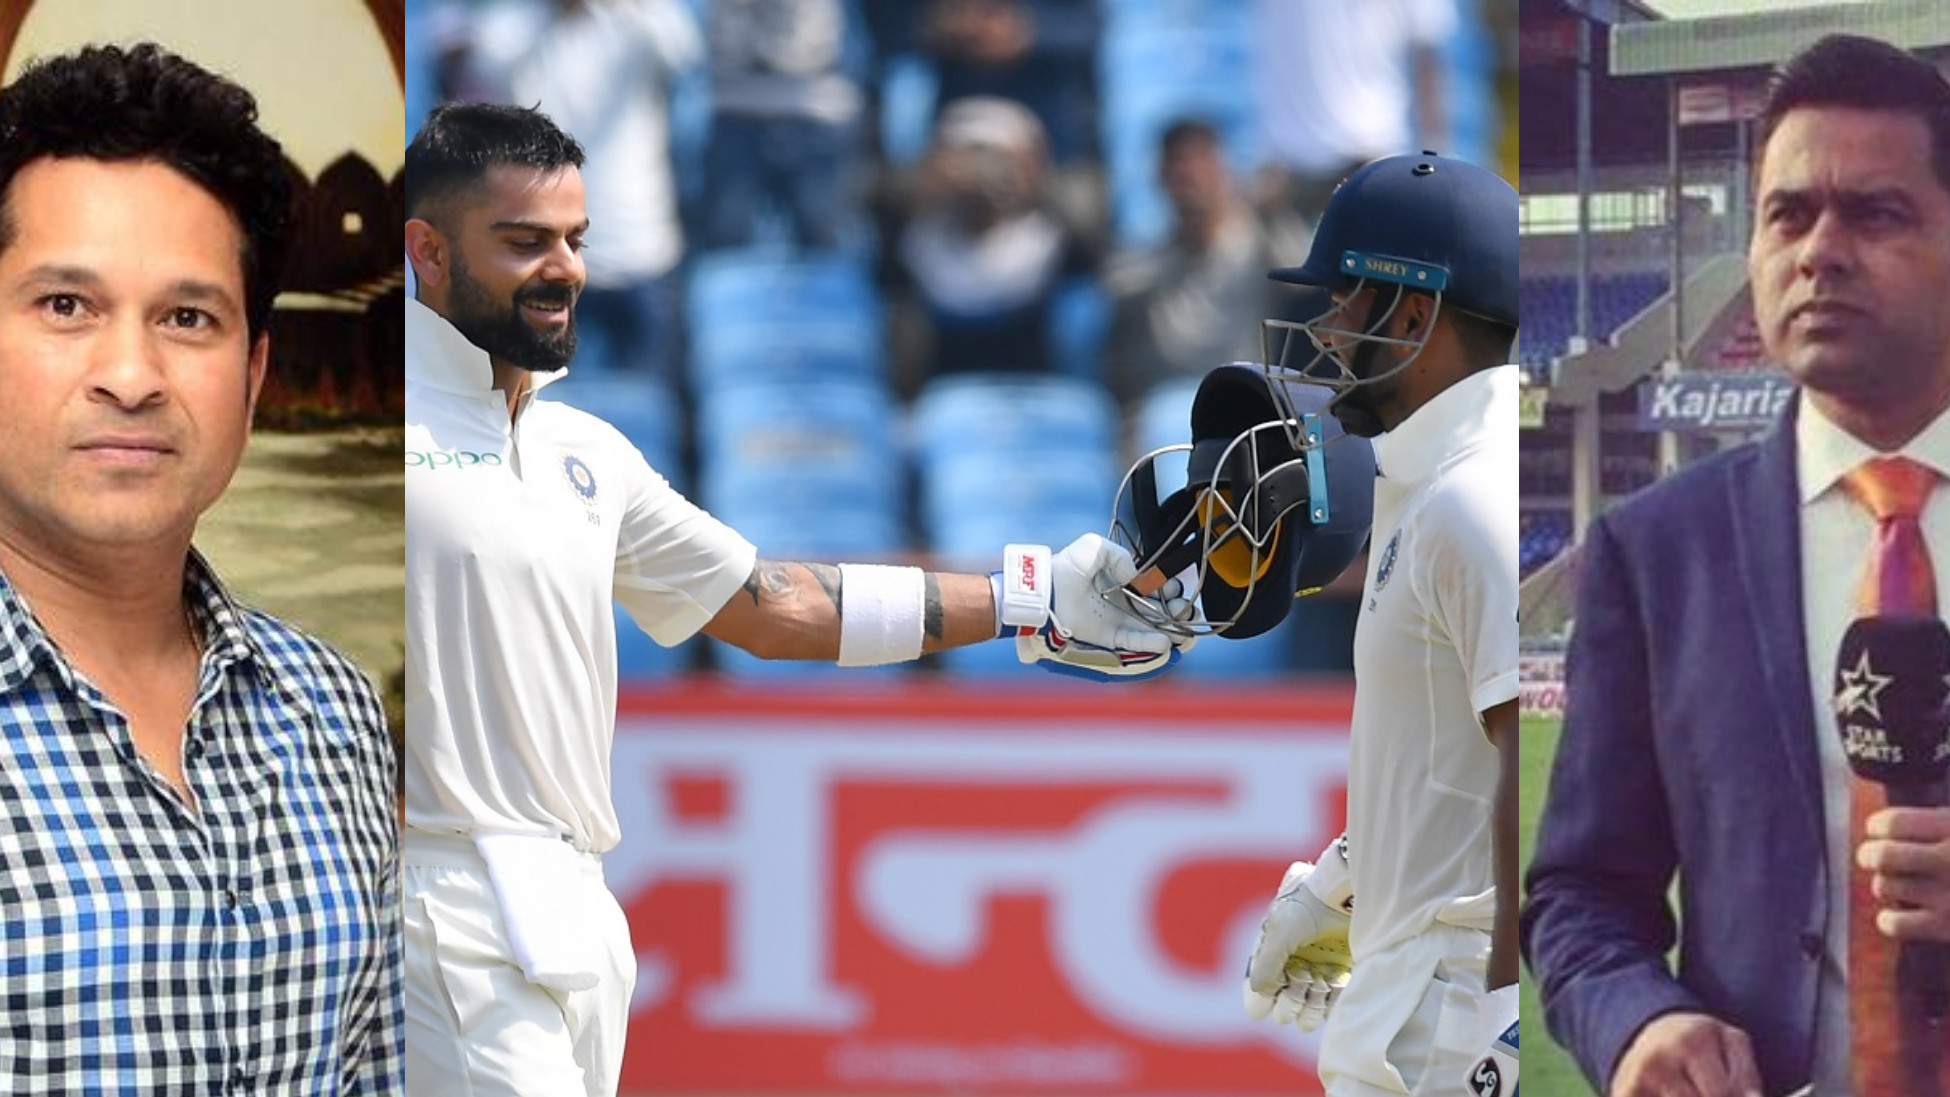 IND v WI 2018: Twitter showers praise on Virat for his ton and Pant for his audacious innings of 92